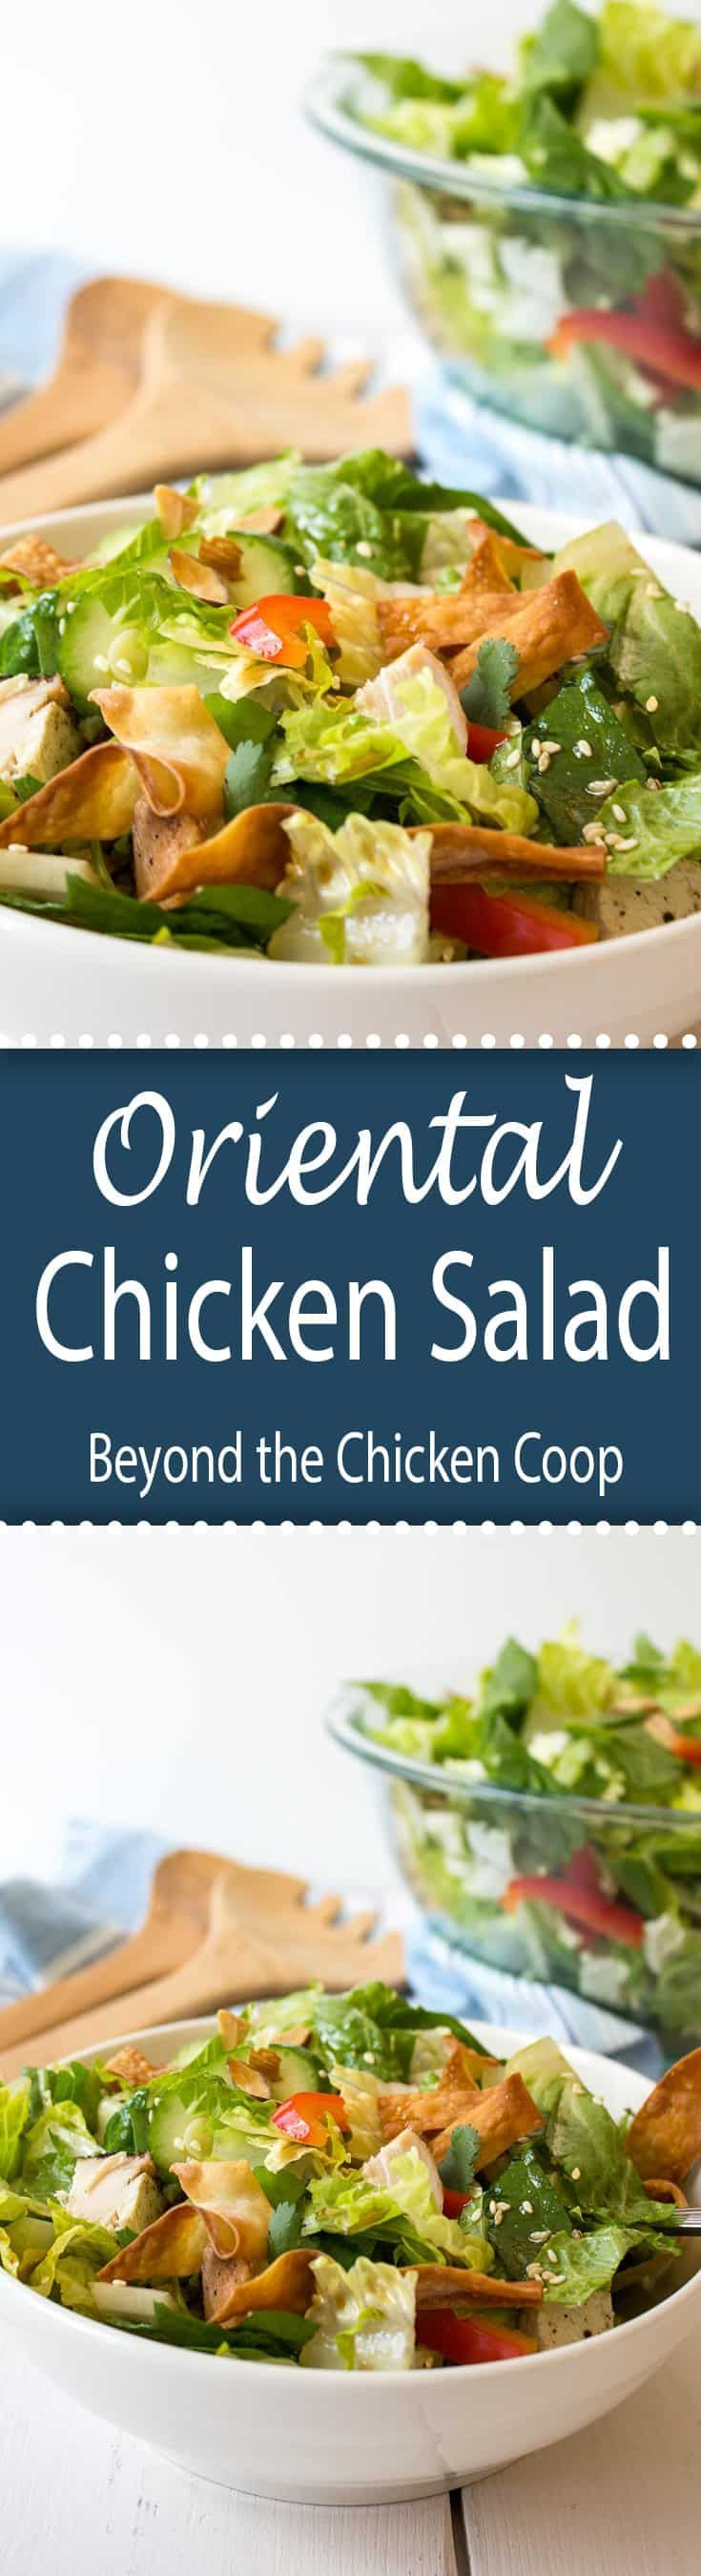 This Oriental Chicken Salad is perfect for lunch or as a light dinner.  via @Beyondthecoop